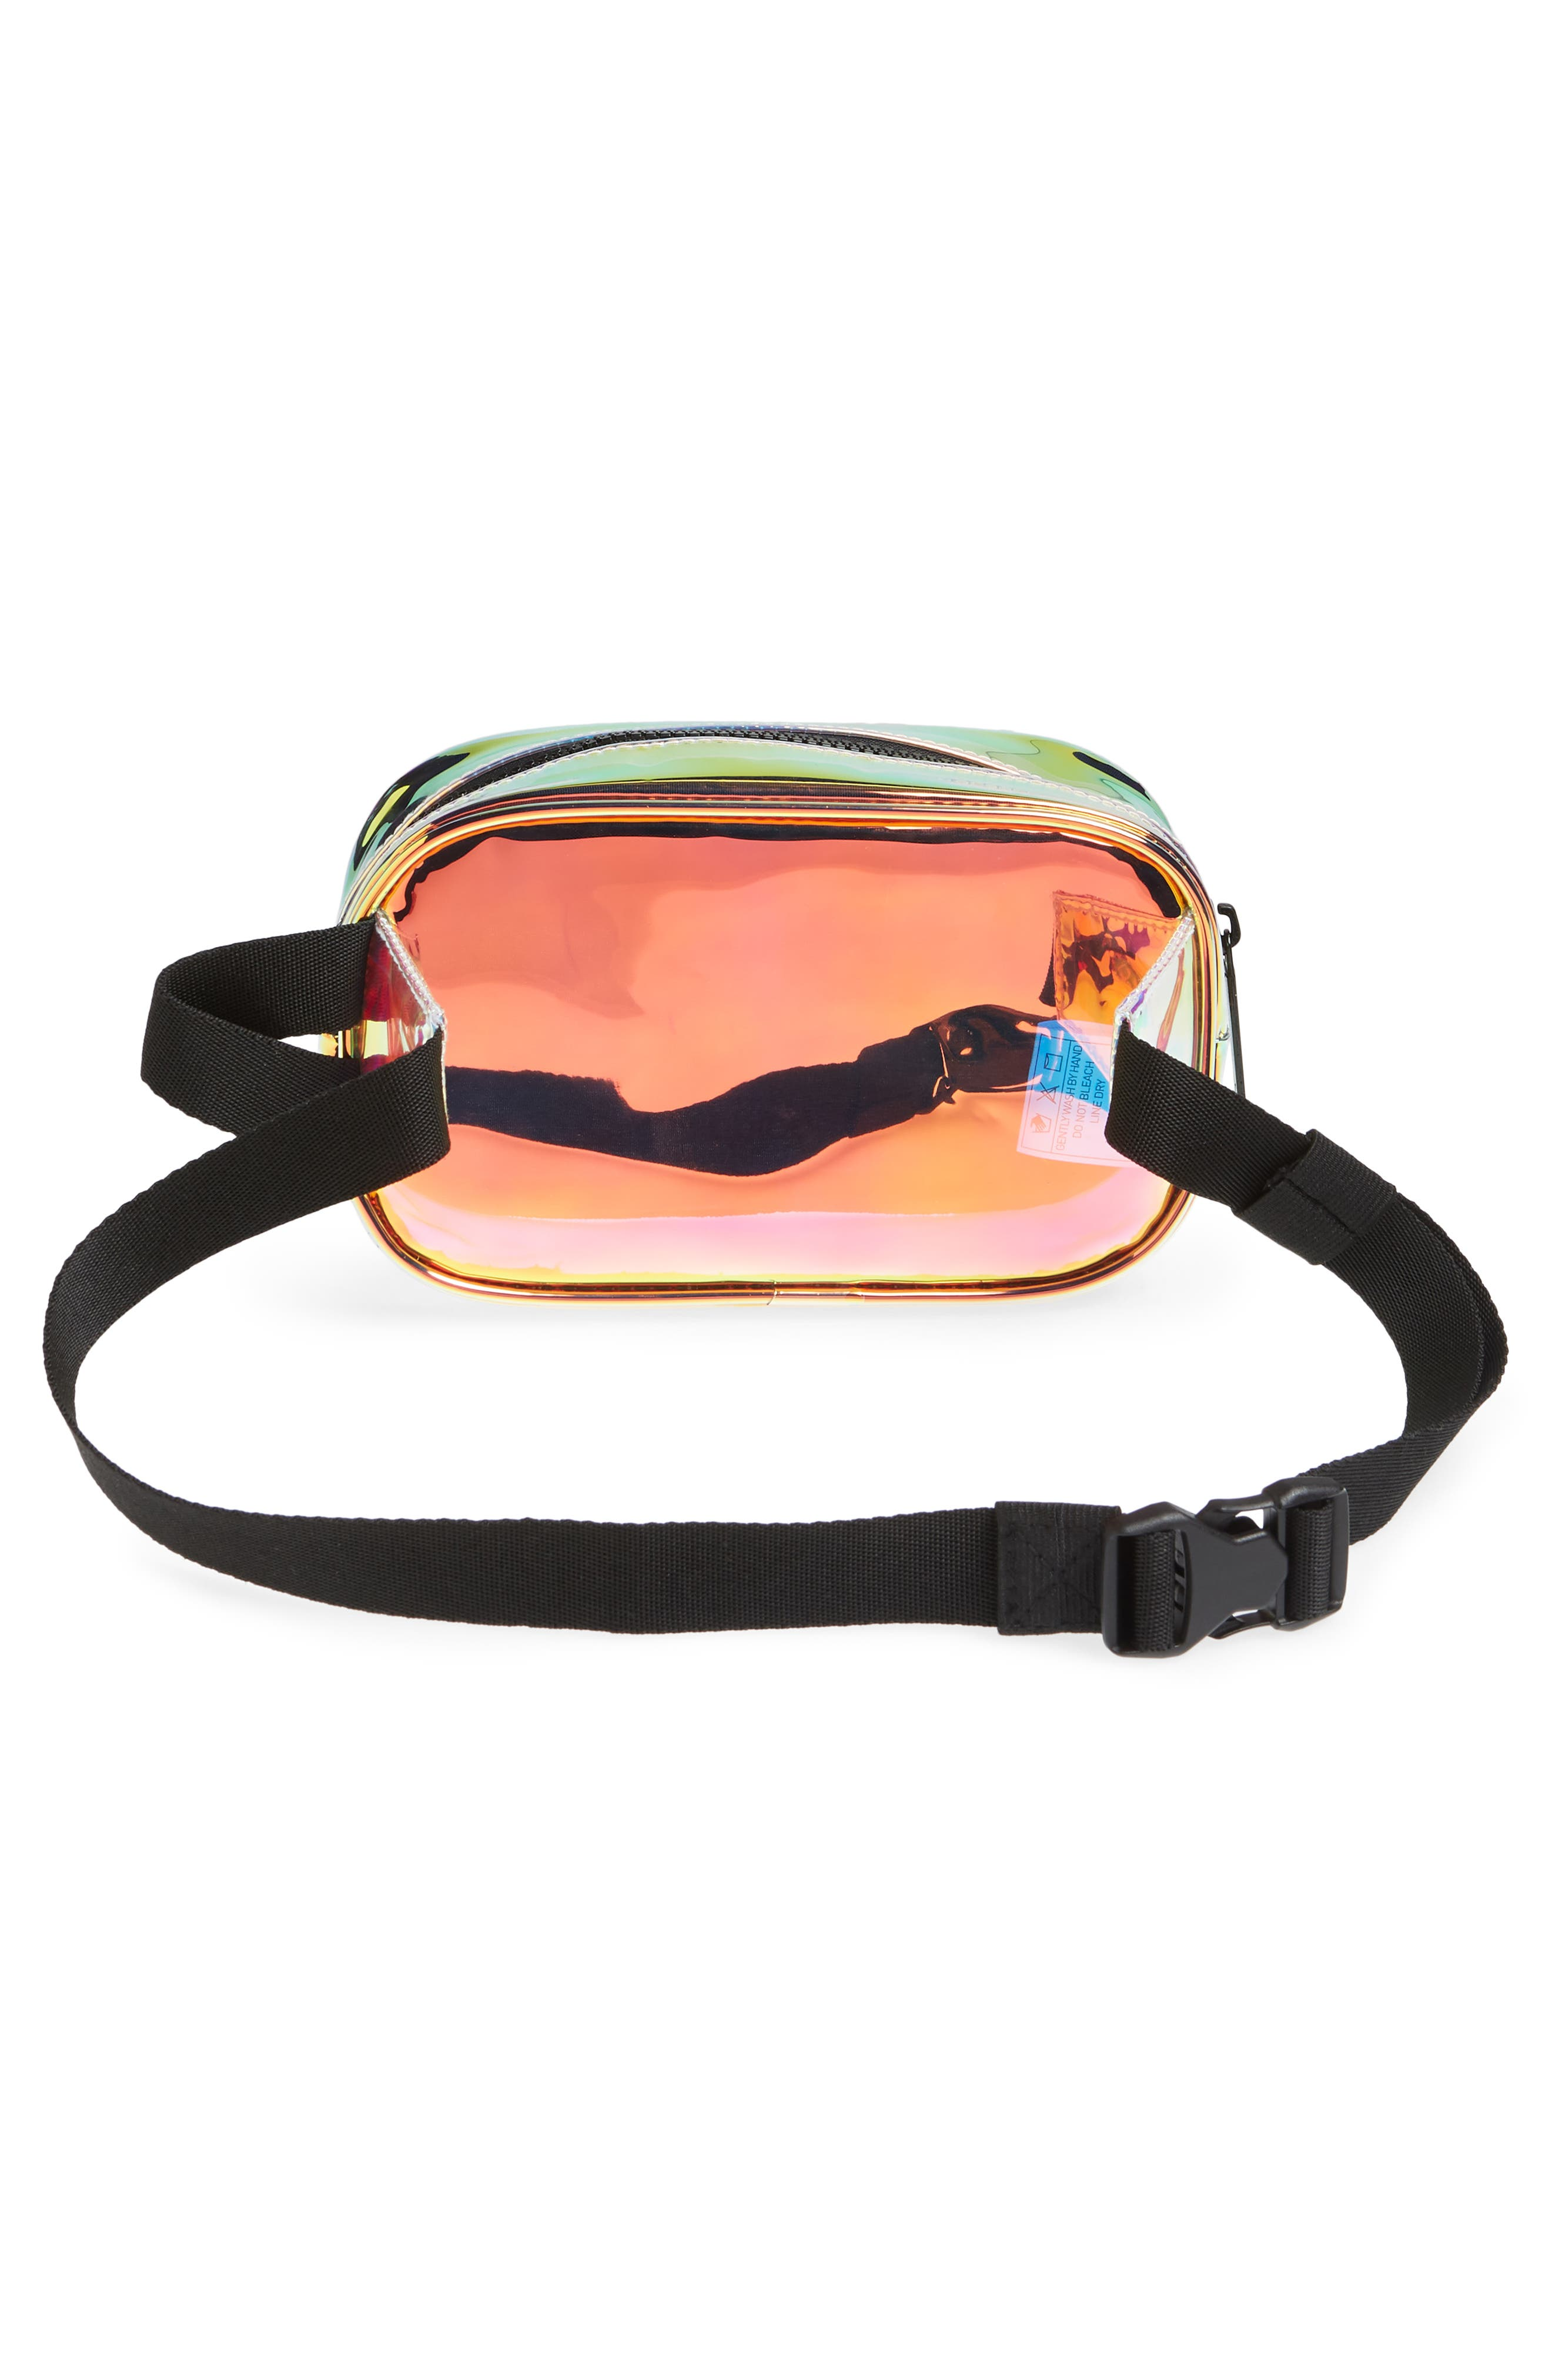 ADIDAS, Ori Holographic Clear Belt Bag, Alternate thumbnail 4, color, 100